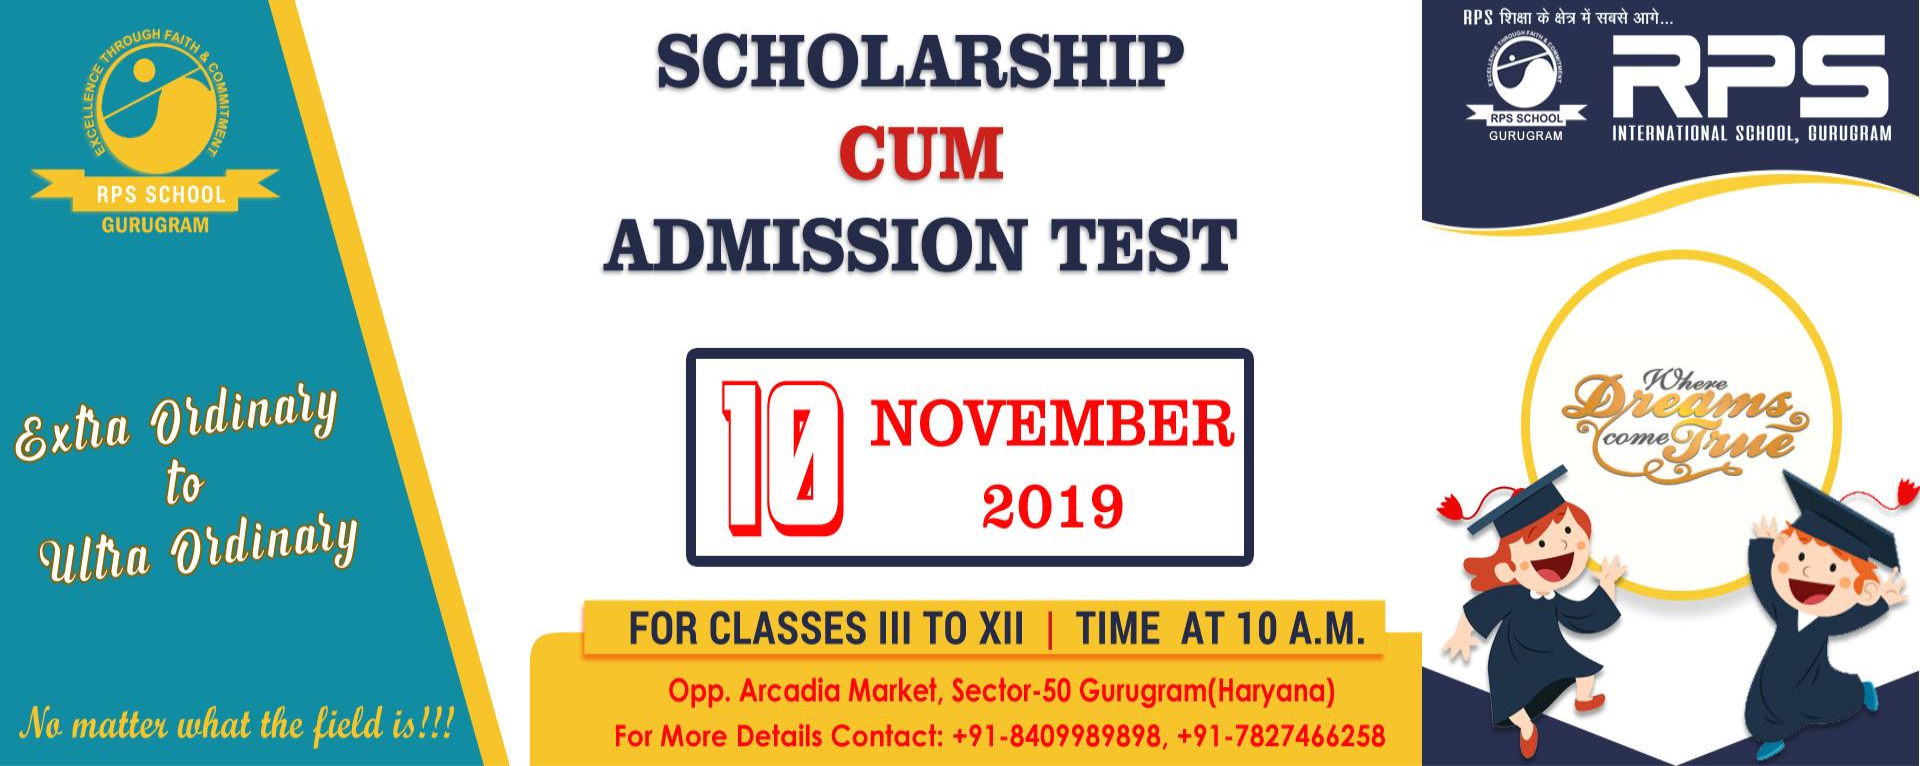 scholarship-test-nov2019